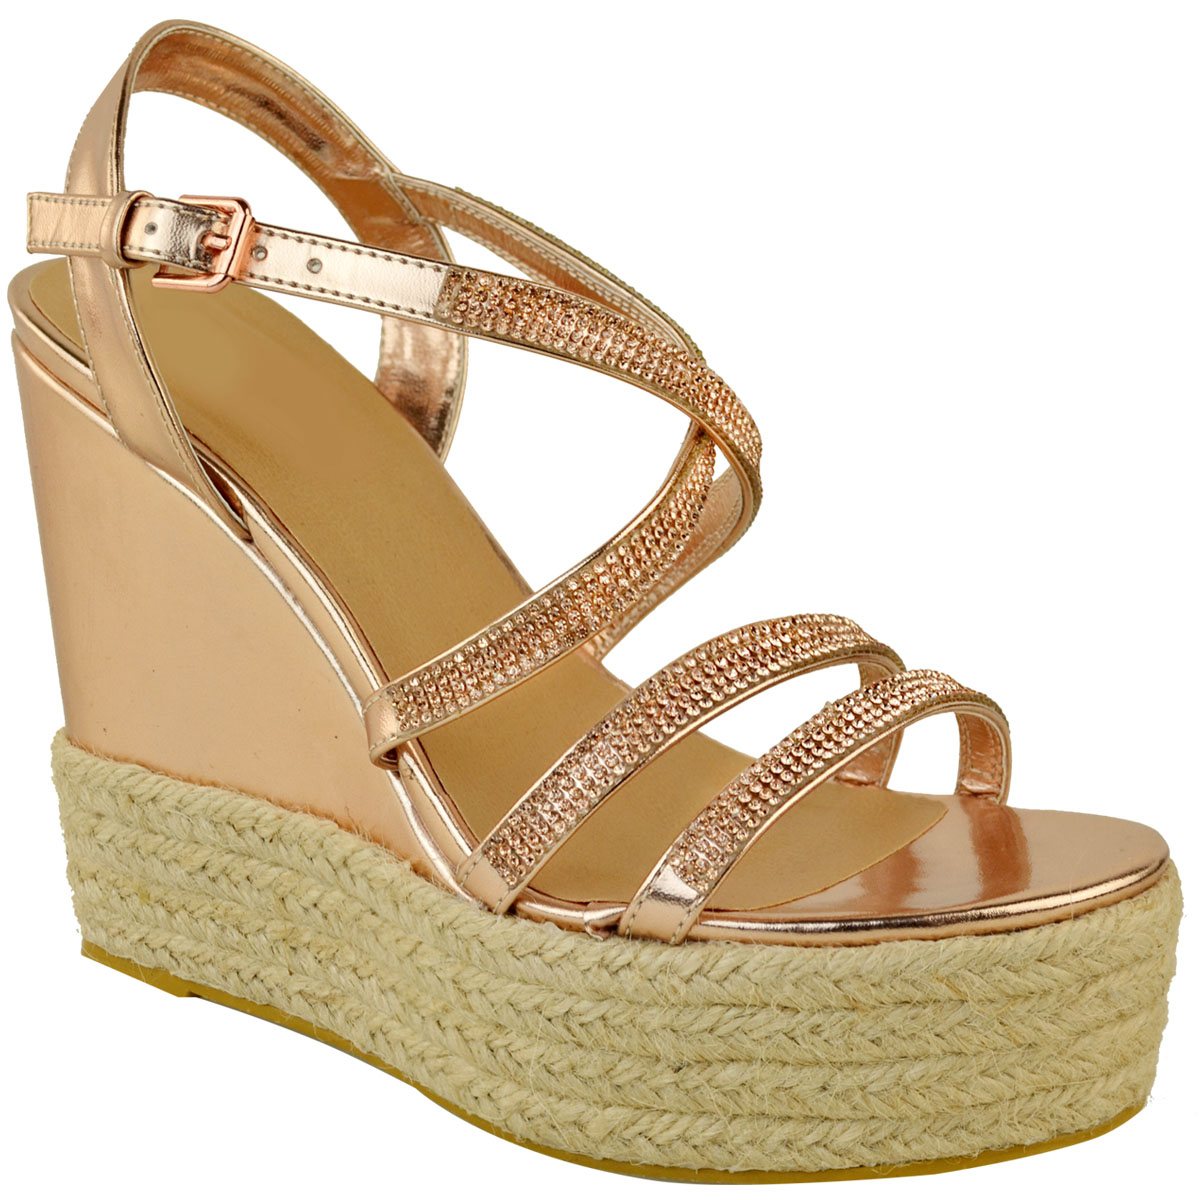 Womens-Ladies-Strappy-Diamante-Wedge-High-Heels-Sandals-Platforms-Shoes-Size-UK thumbnail 13